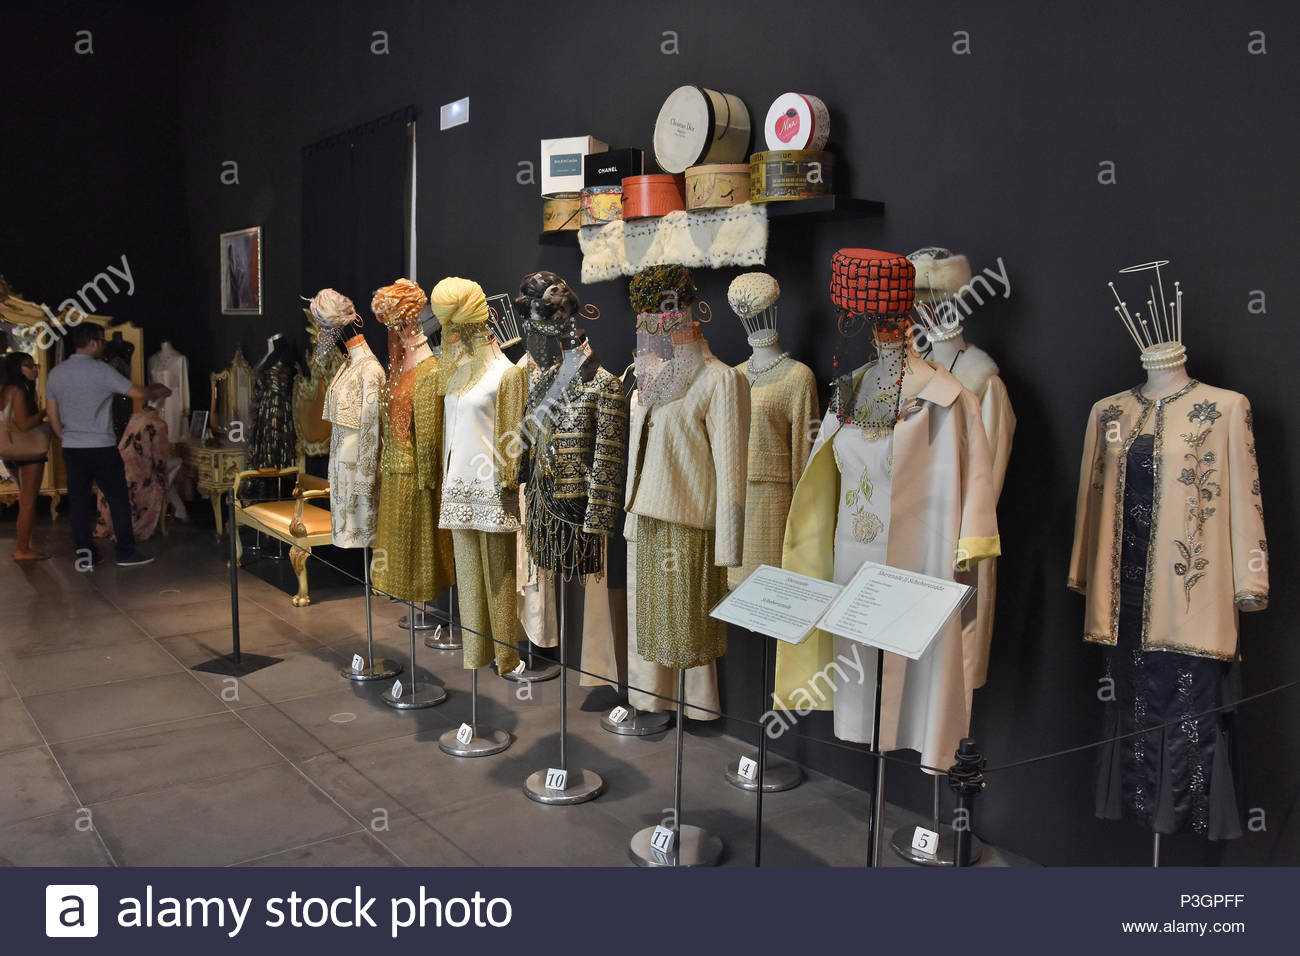 Figures wearing dresses from famous fashion designers, one of the Haute Couture collections displayed at Automobile and Fashion Museum in Malaga Spain - Stock Image